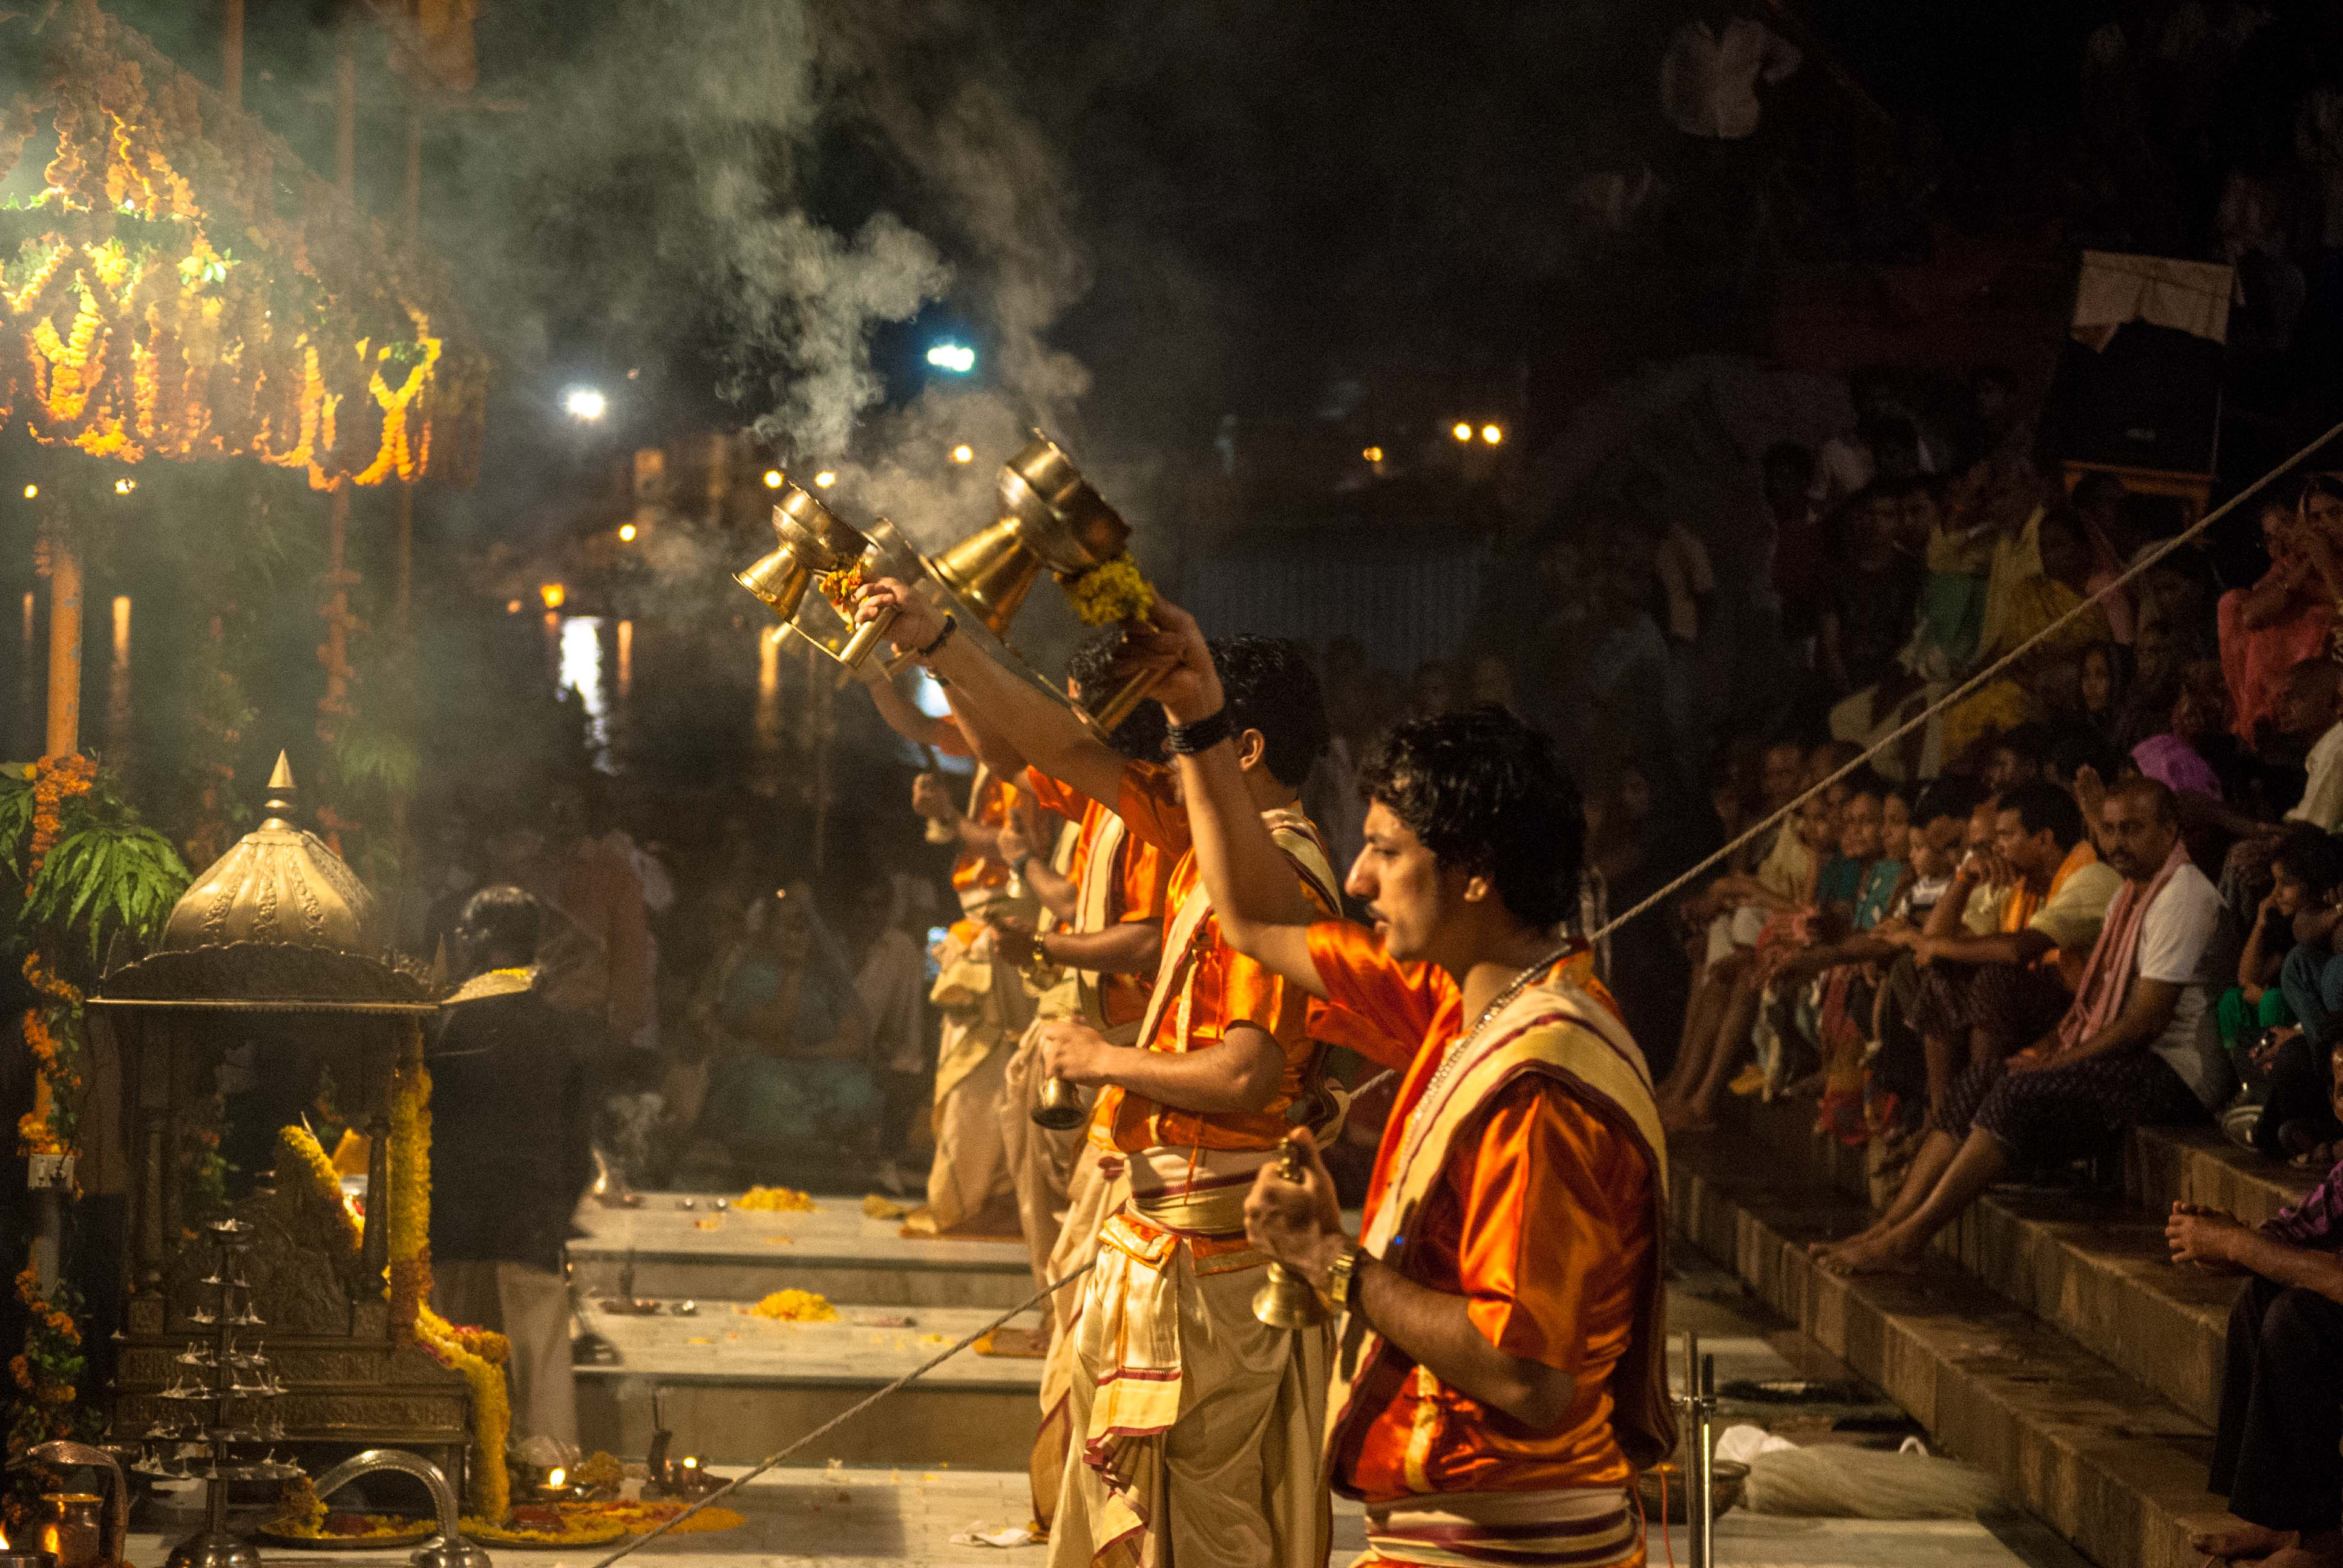 File:Ganga aarti with resin at Dasaswamedh Ghat, Varanasi 01.jpg ...